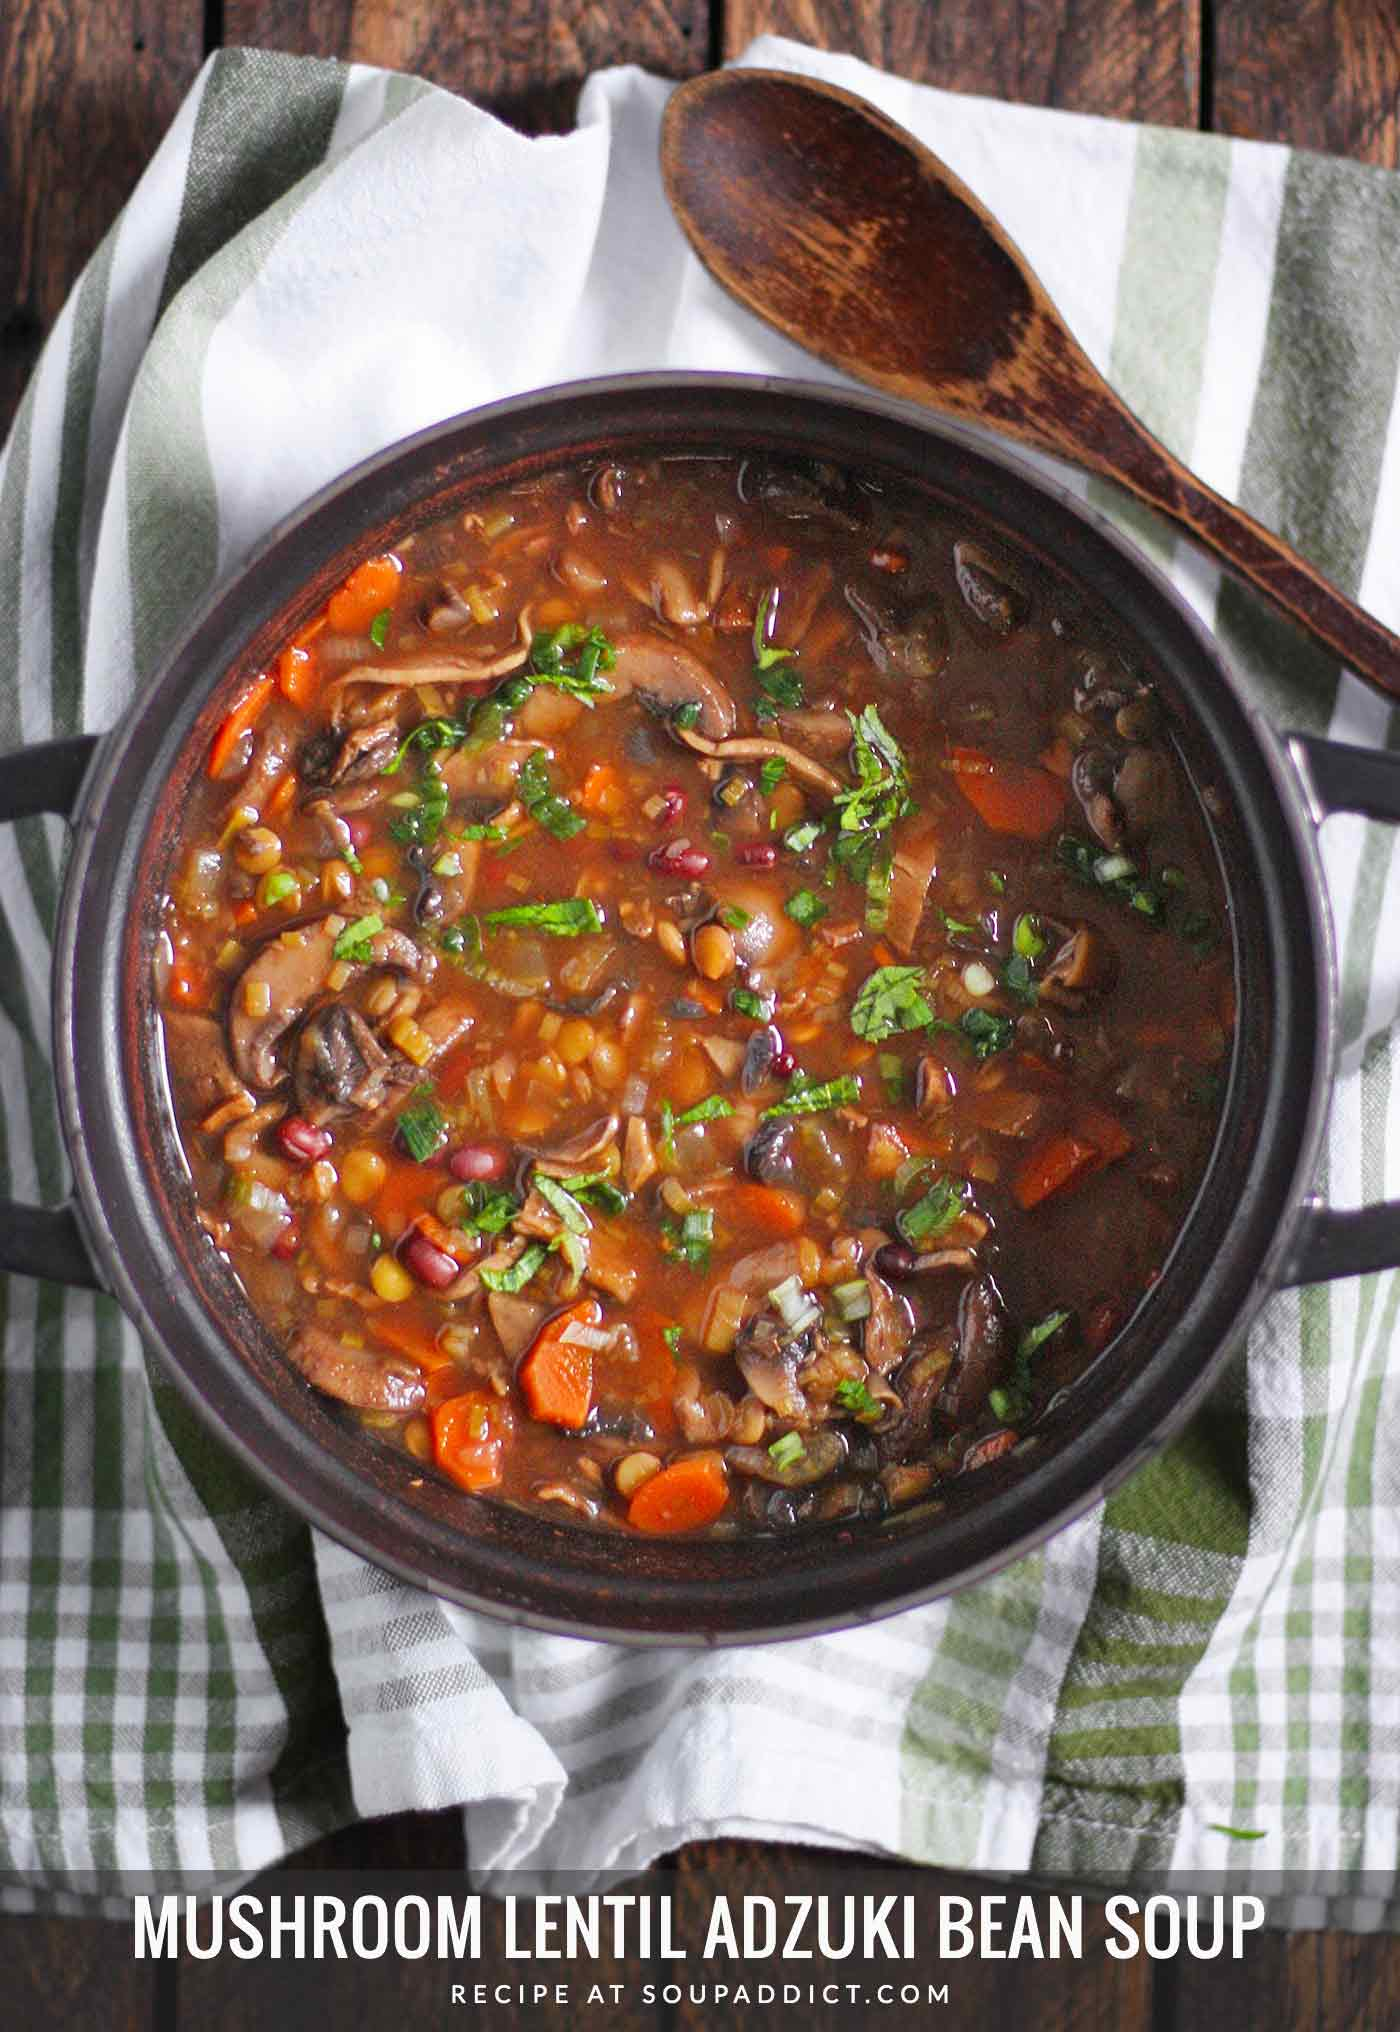 Mushroom Lentil Adzuki Bean Soup in a black Dutch oven with a serving spoon